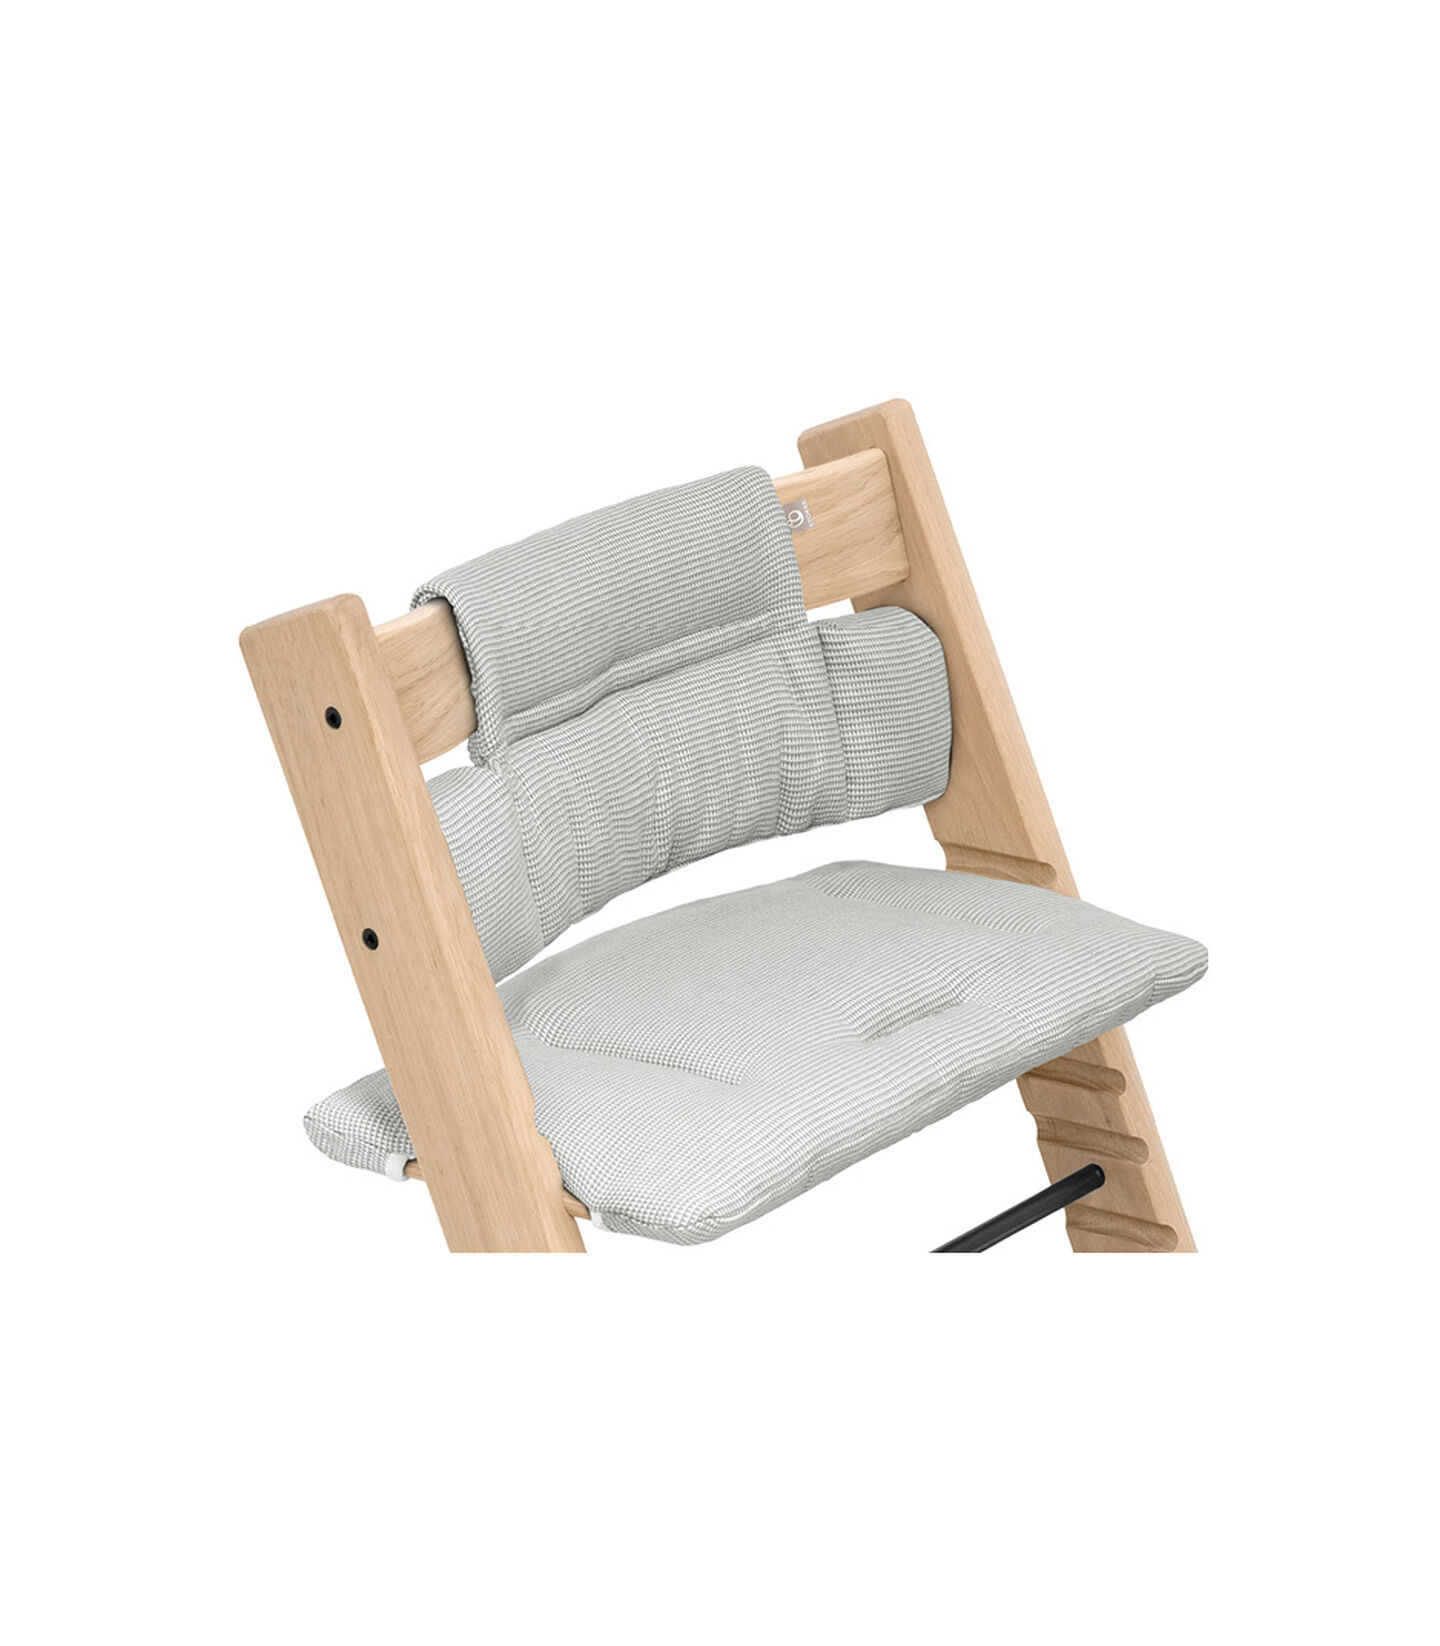 Tripp Trapp® Classic Kussenset Nordic Grey, Nordic Grey, mainview view 1